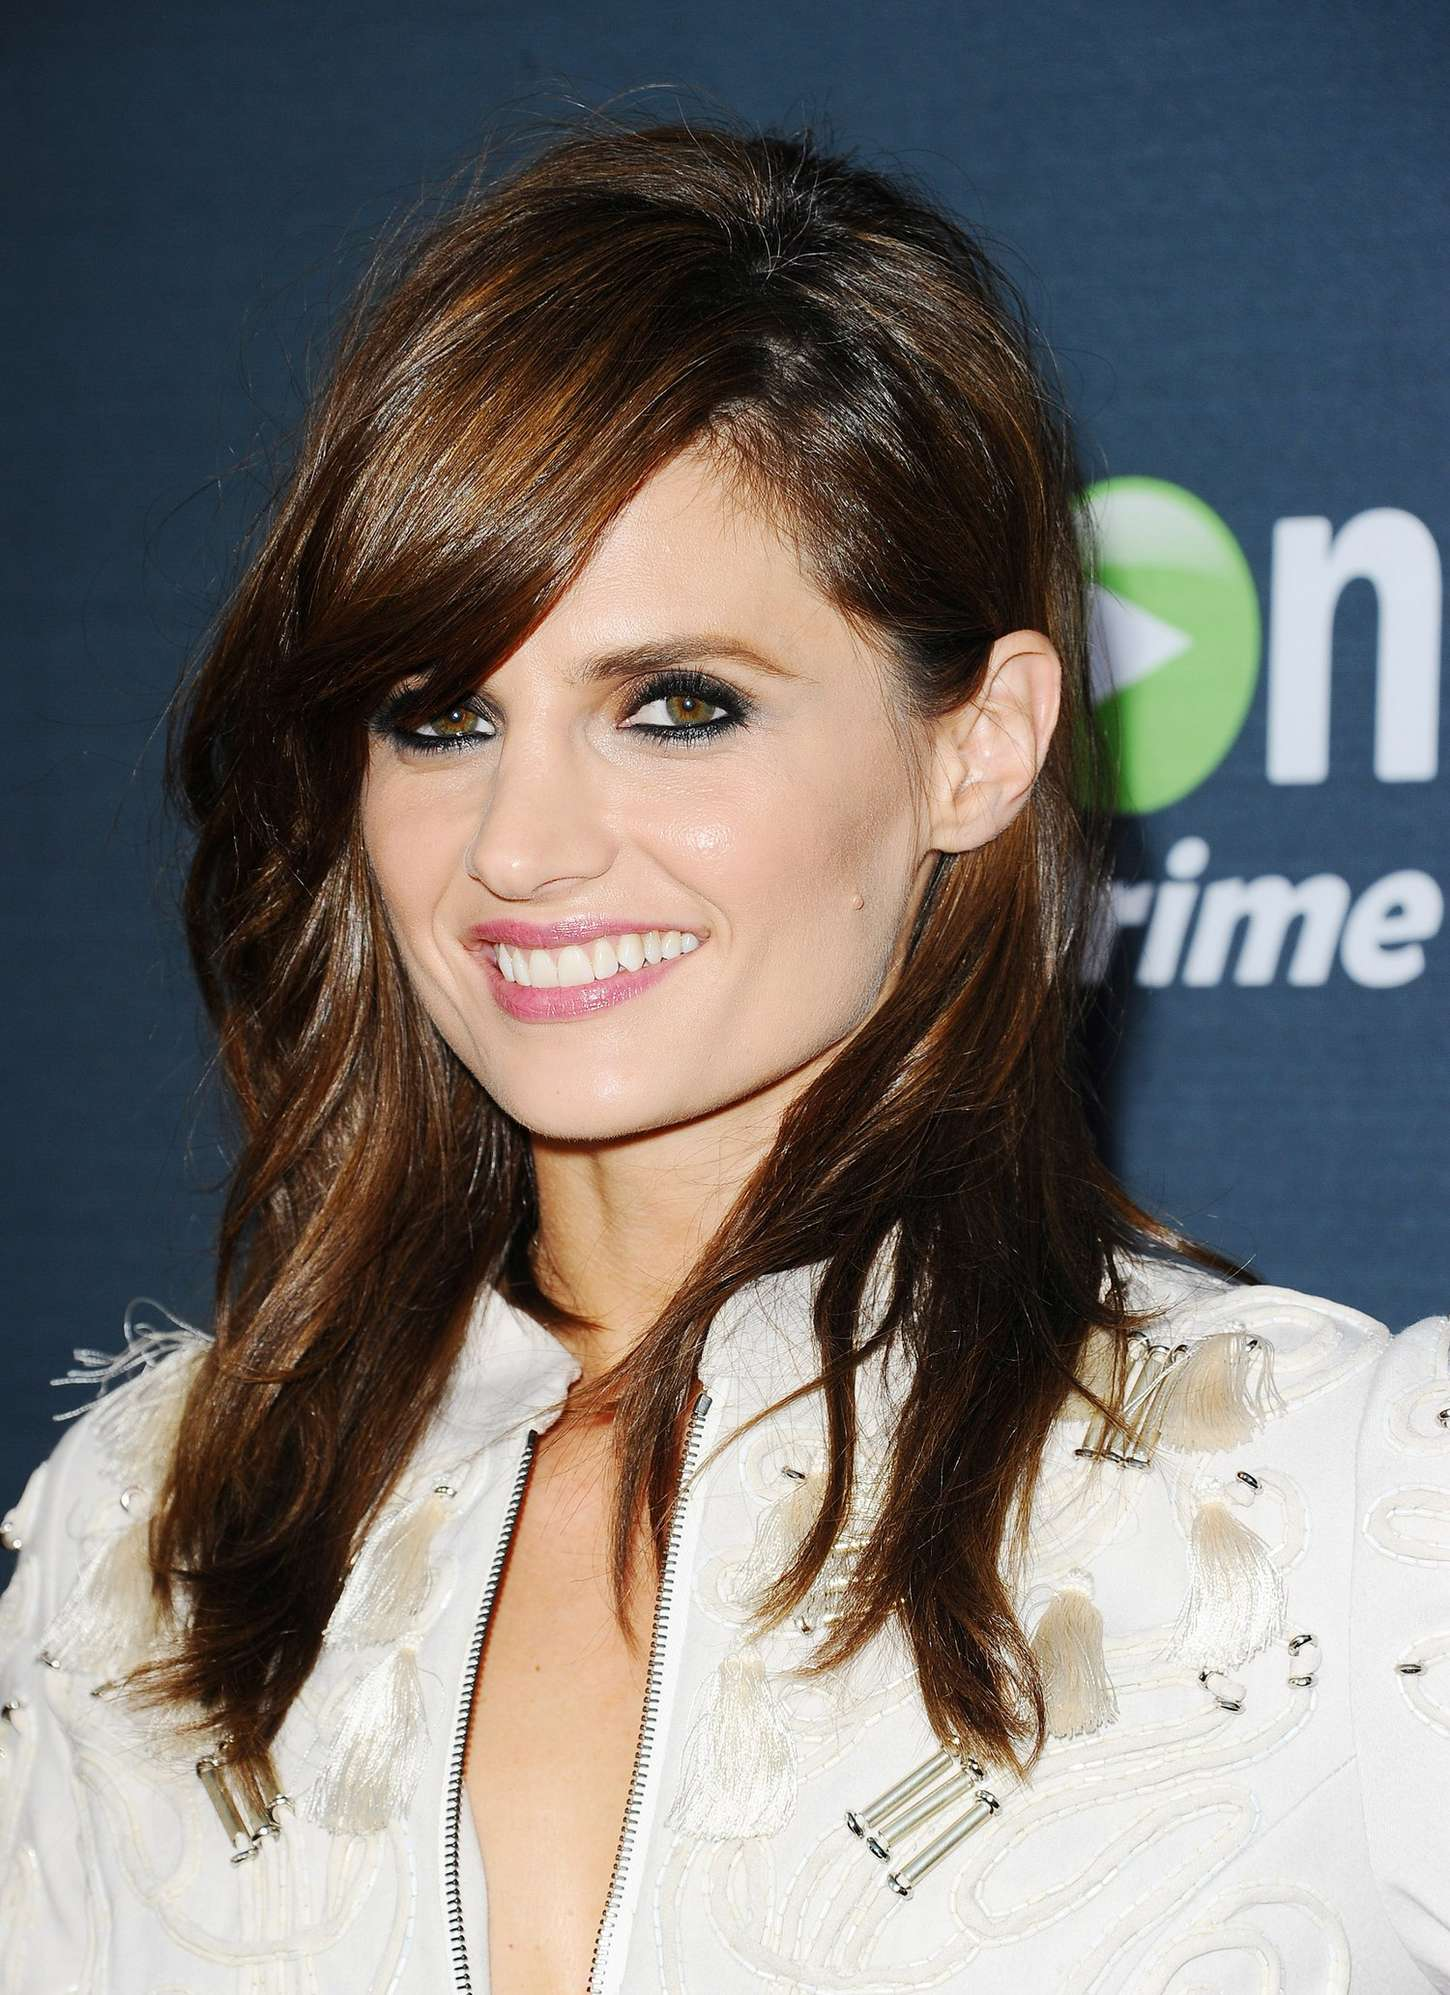 Stana Katic Hand of God Screening in Los Angeles